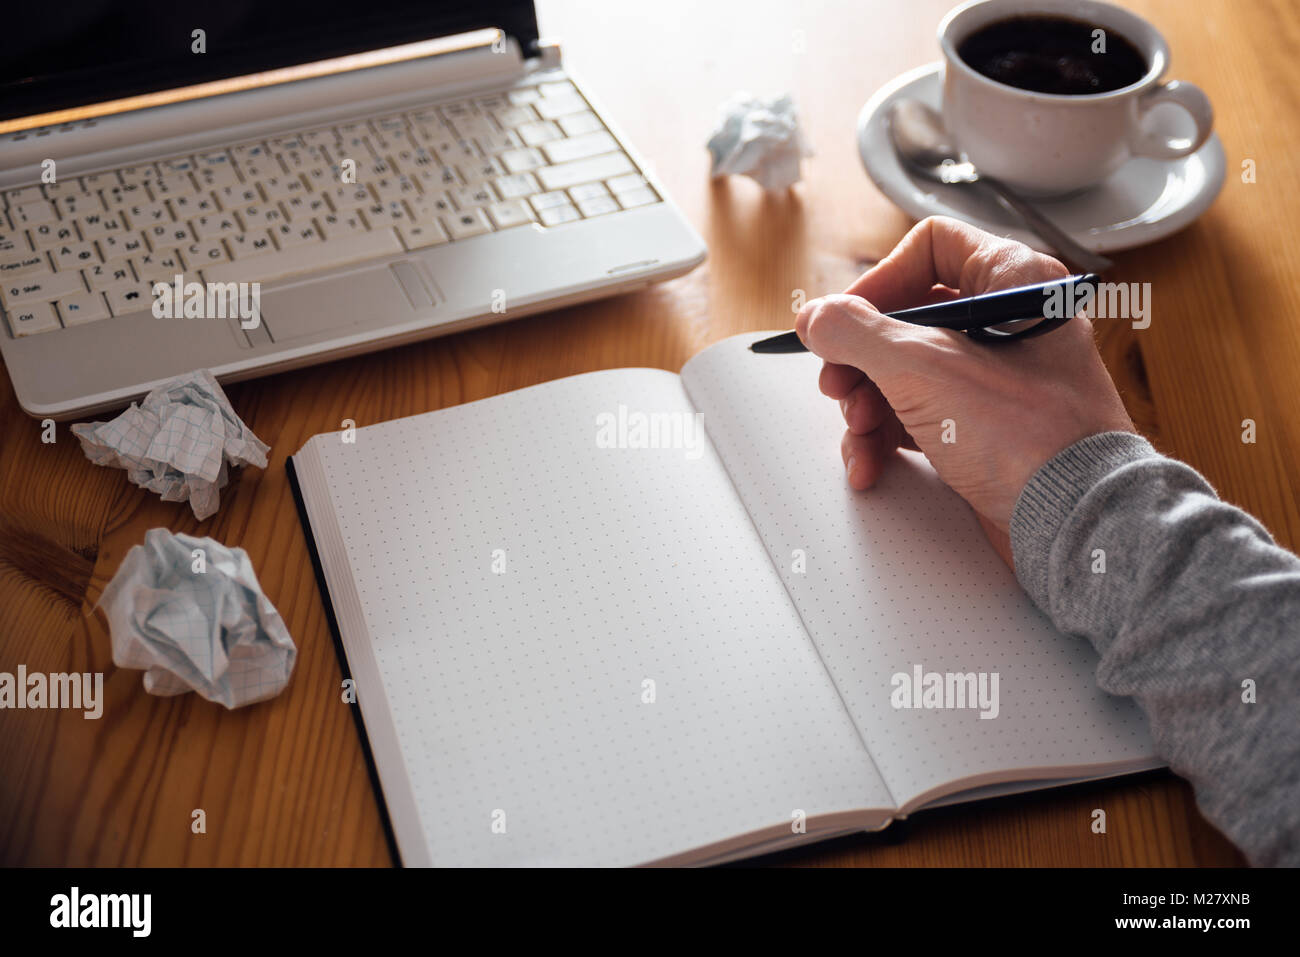 man hand writing in planner coffee laptop on background stock